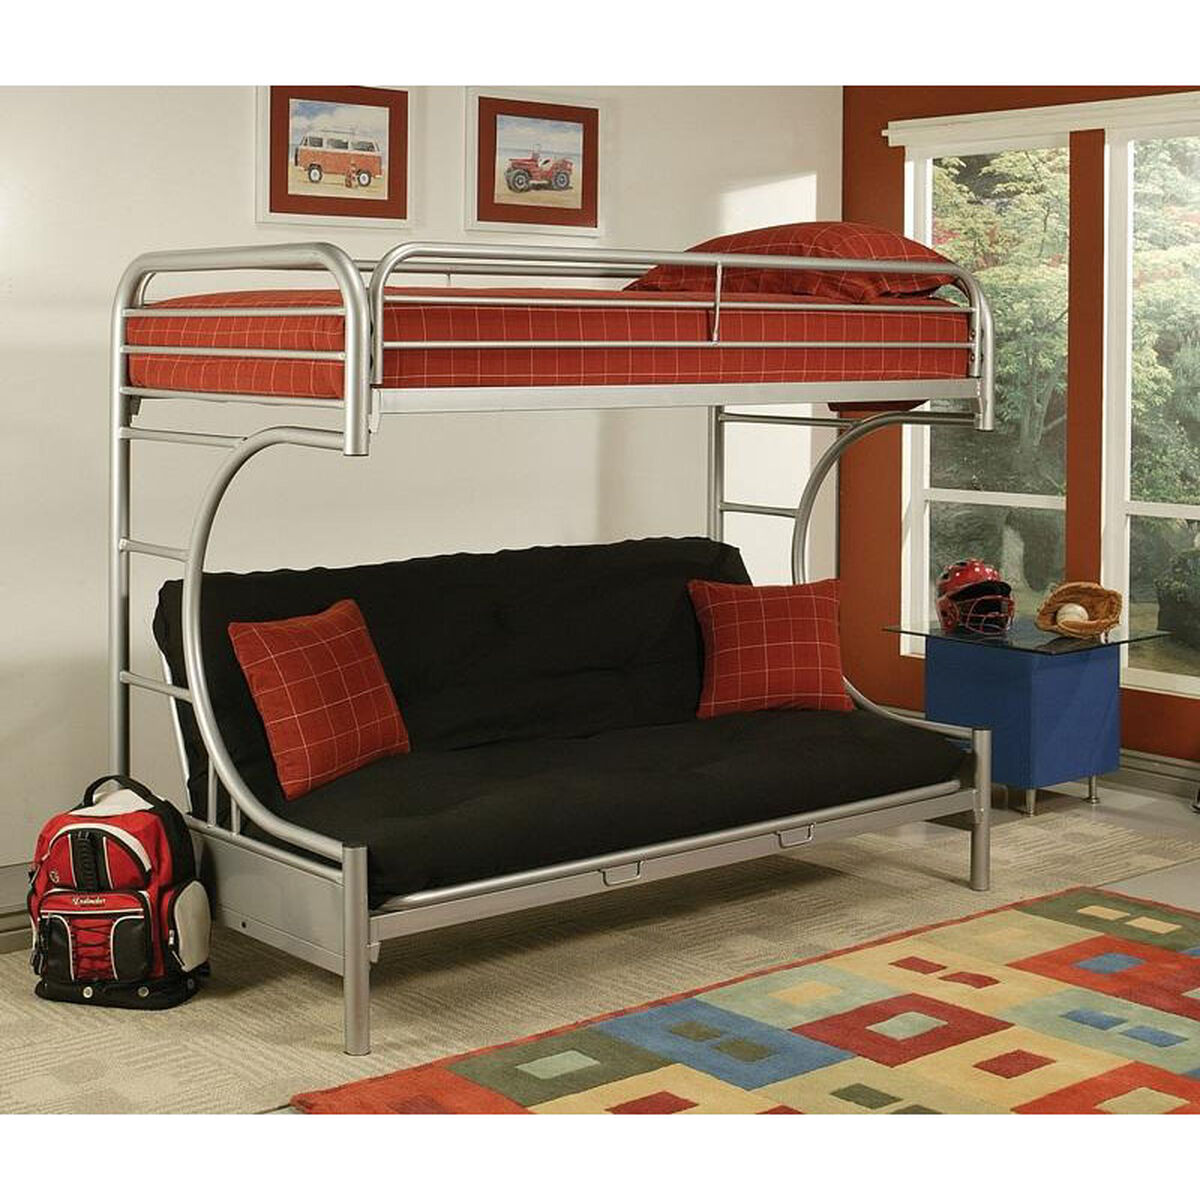 Our Eclipse Twin Over Full Futon C Style Metal Bunk Bed With Built In